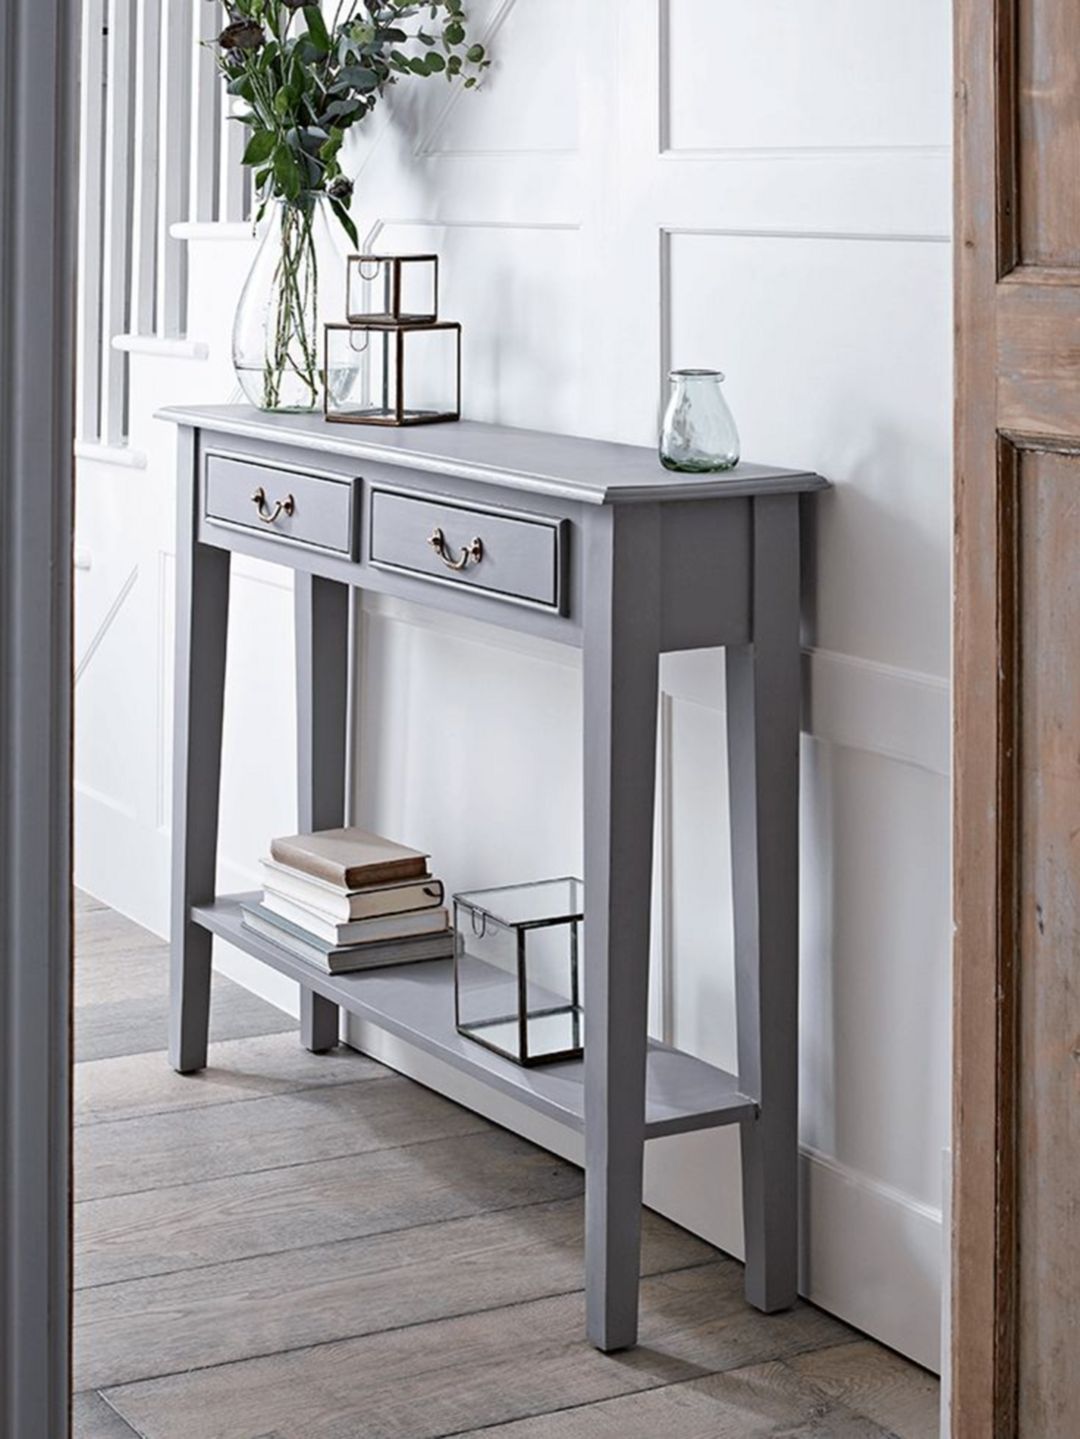 30 Unique Vintage Entryway Table Design Ideas That Will Enhance Your Small Space Hall Table Decor Console Table Hallway Small Console Tables